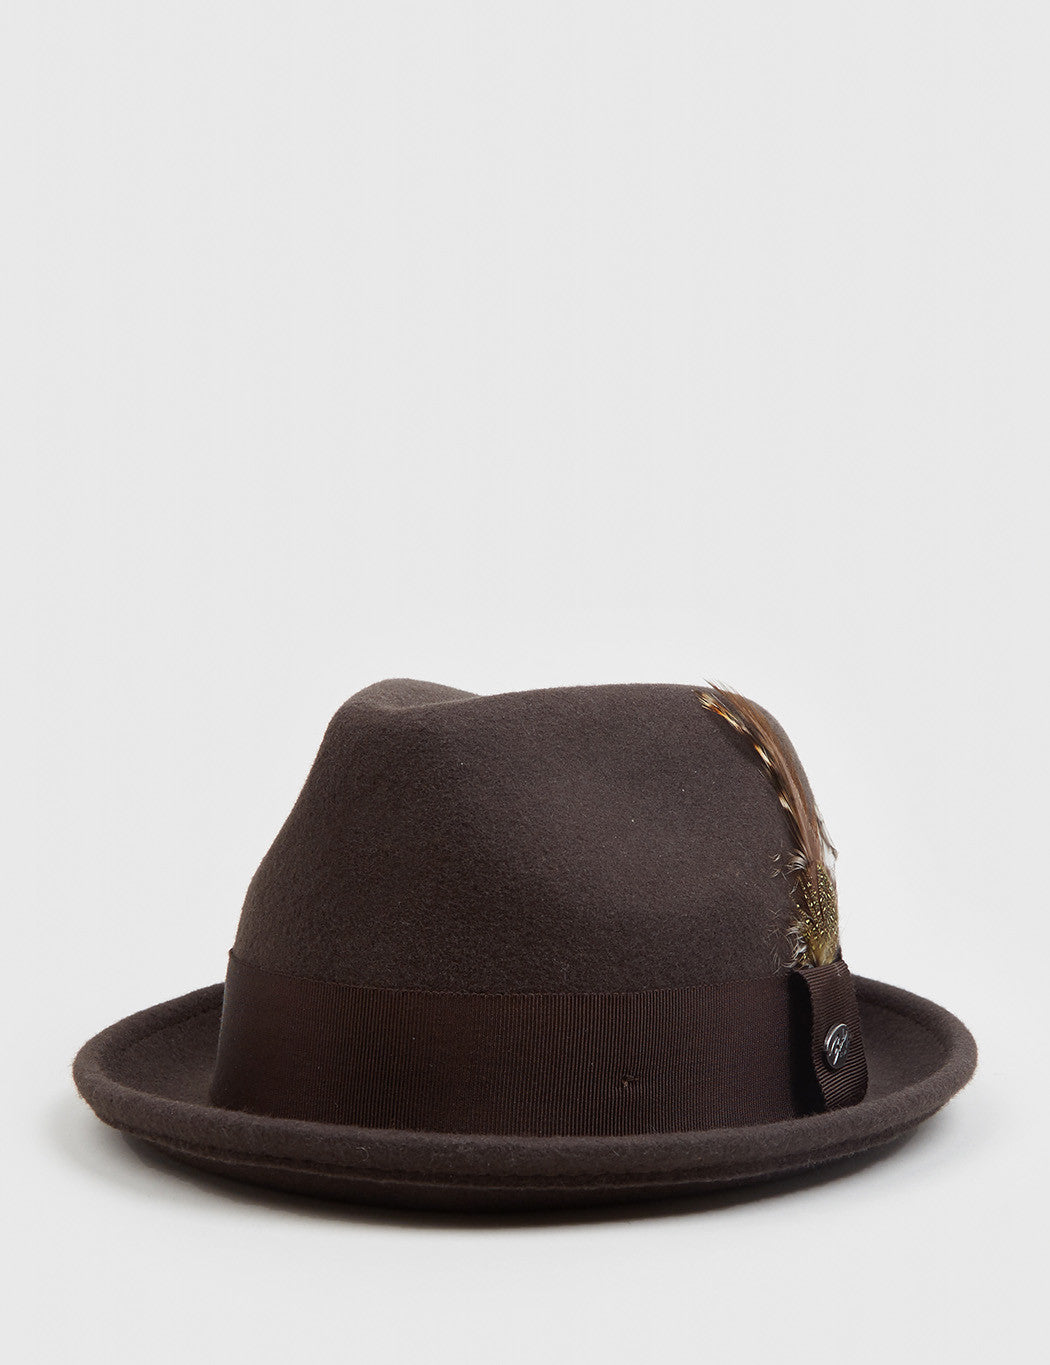 996f3189 Bailey Tino Felt Crushable Trilby Hat - Brown | URBAN EXCESS.